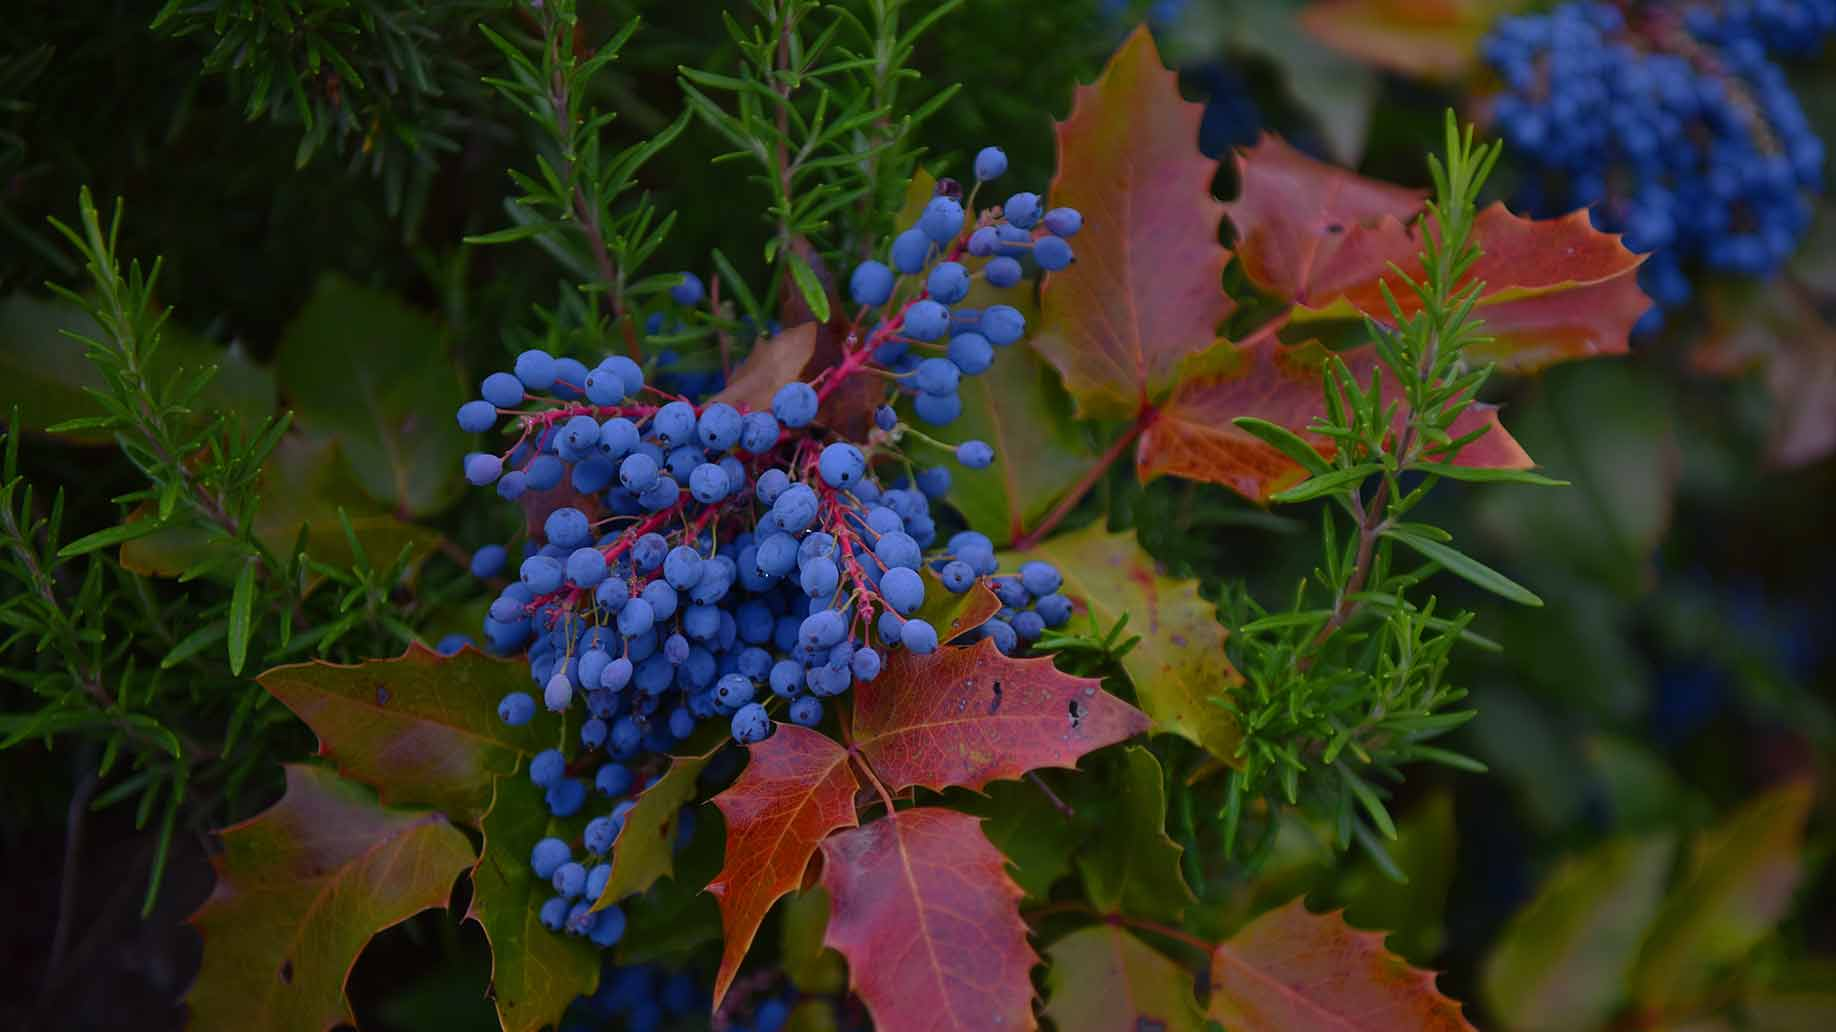 oregon grape root bush blue berries eczema psoriasis skin disease mahonia aquifolium antimicrobial anti inflammatory antifungal natural remedies